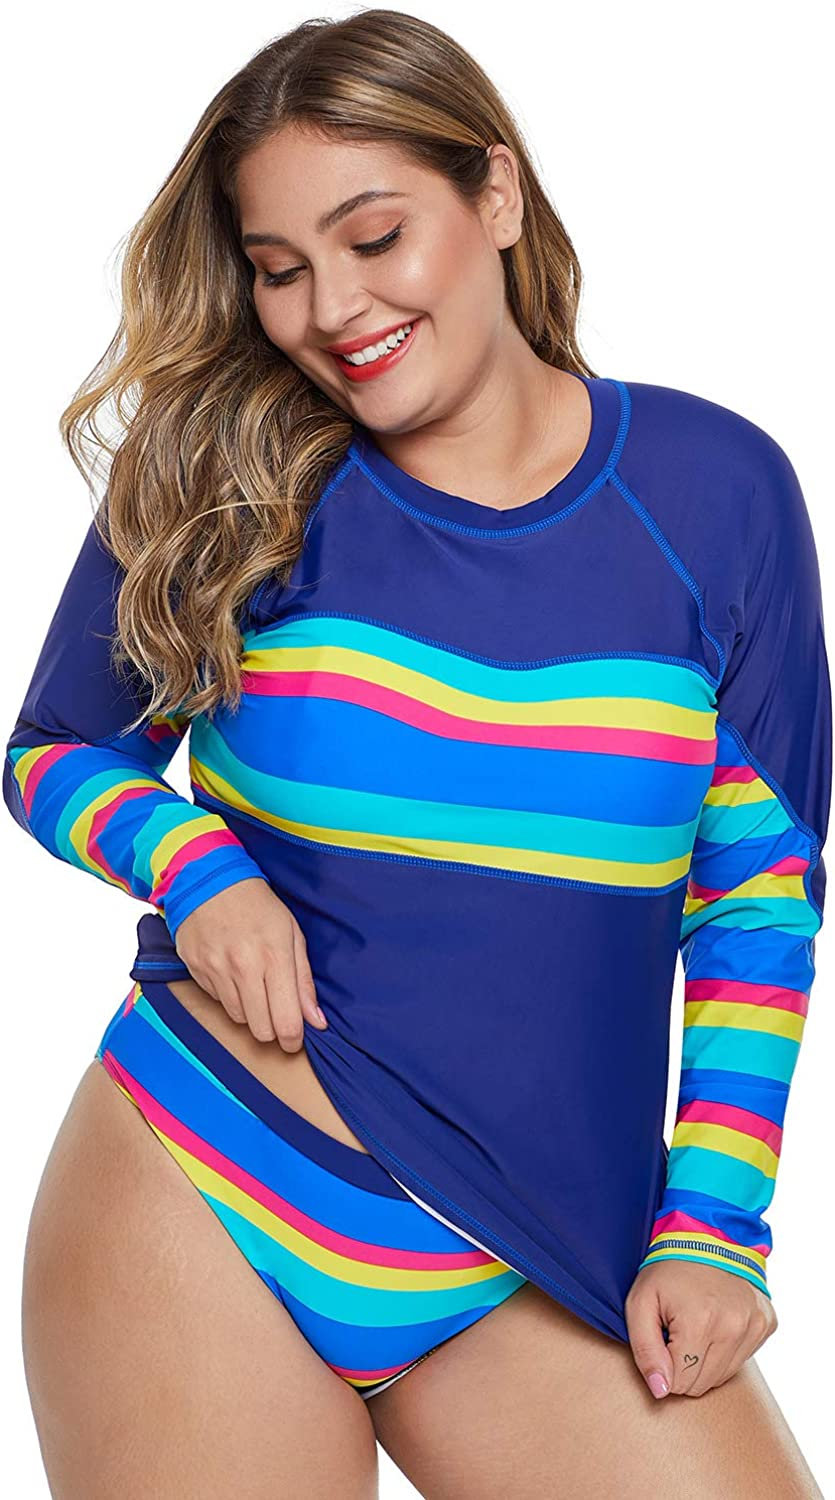 Women's Split Surf Suit QuickDrying Bikini Sunscreen LongSleeved Striped Large Size Swimsuit Diving Suit with A Swimming Goggles